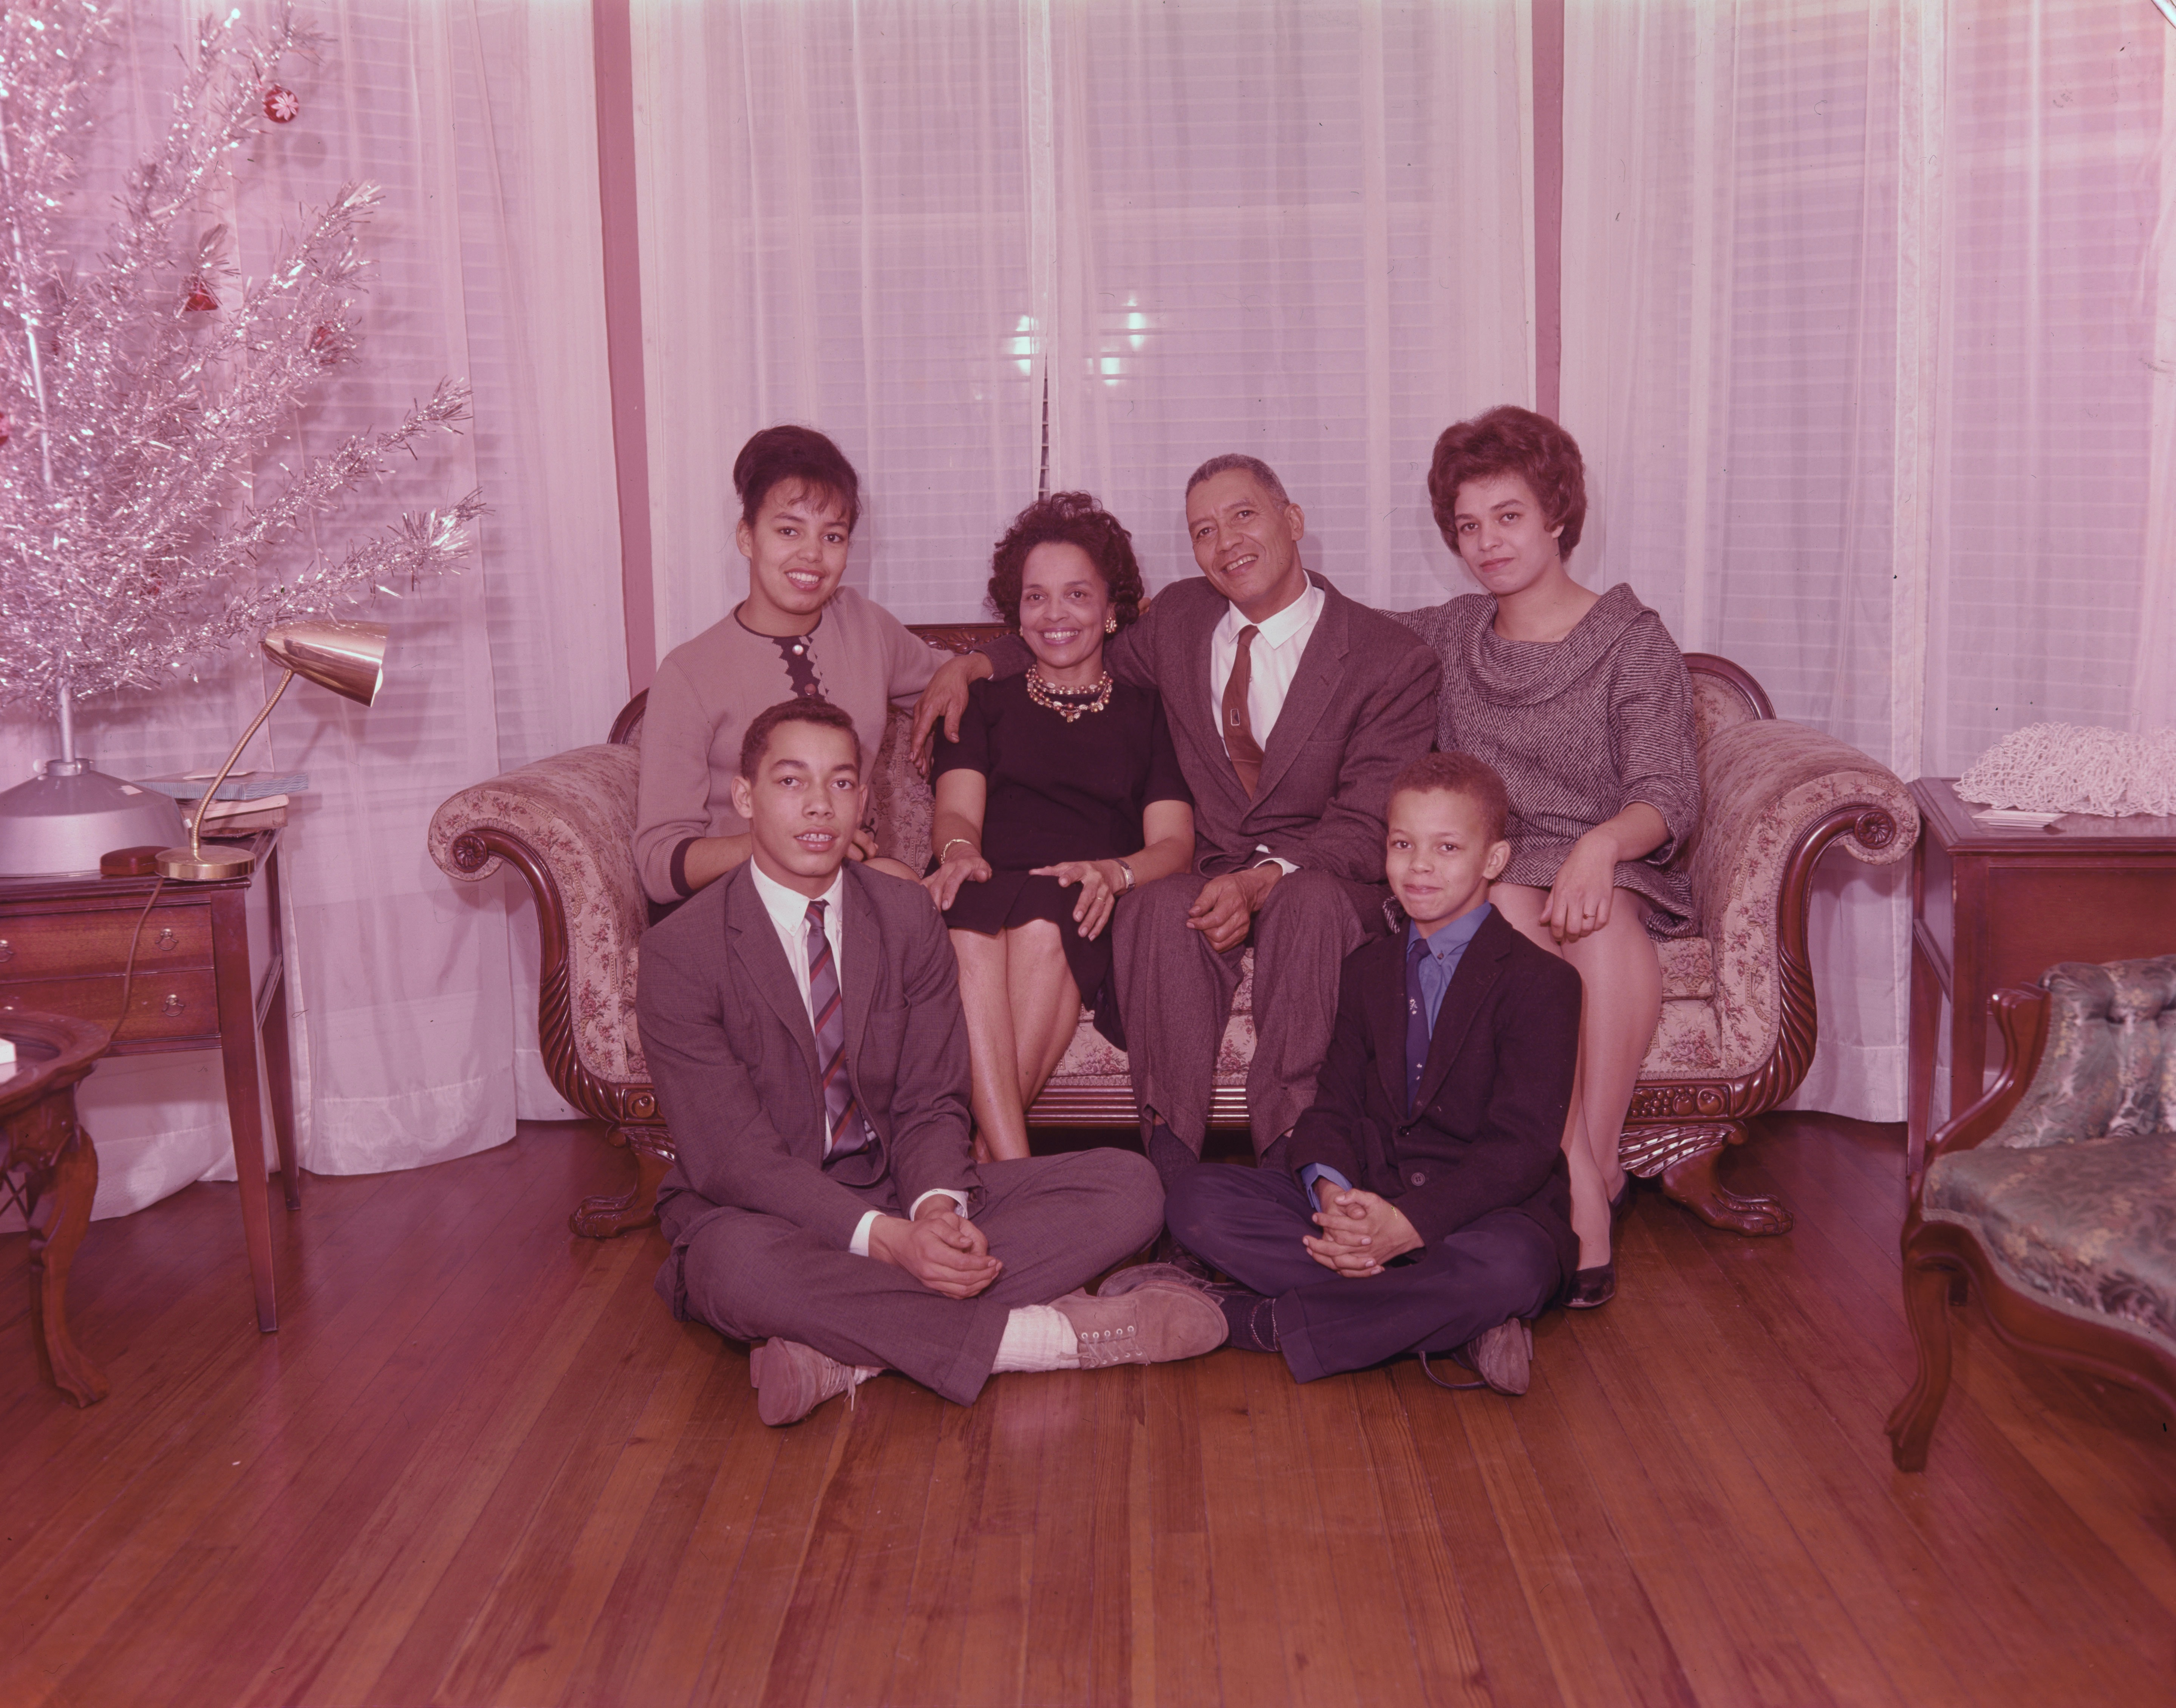 Family photo with 4 members sitting on couch, and two members sitting on the wood floor in front of the couch.